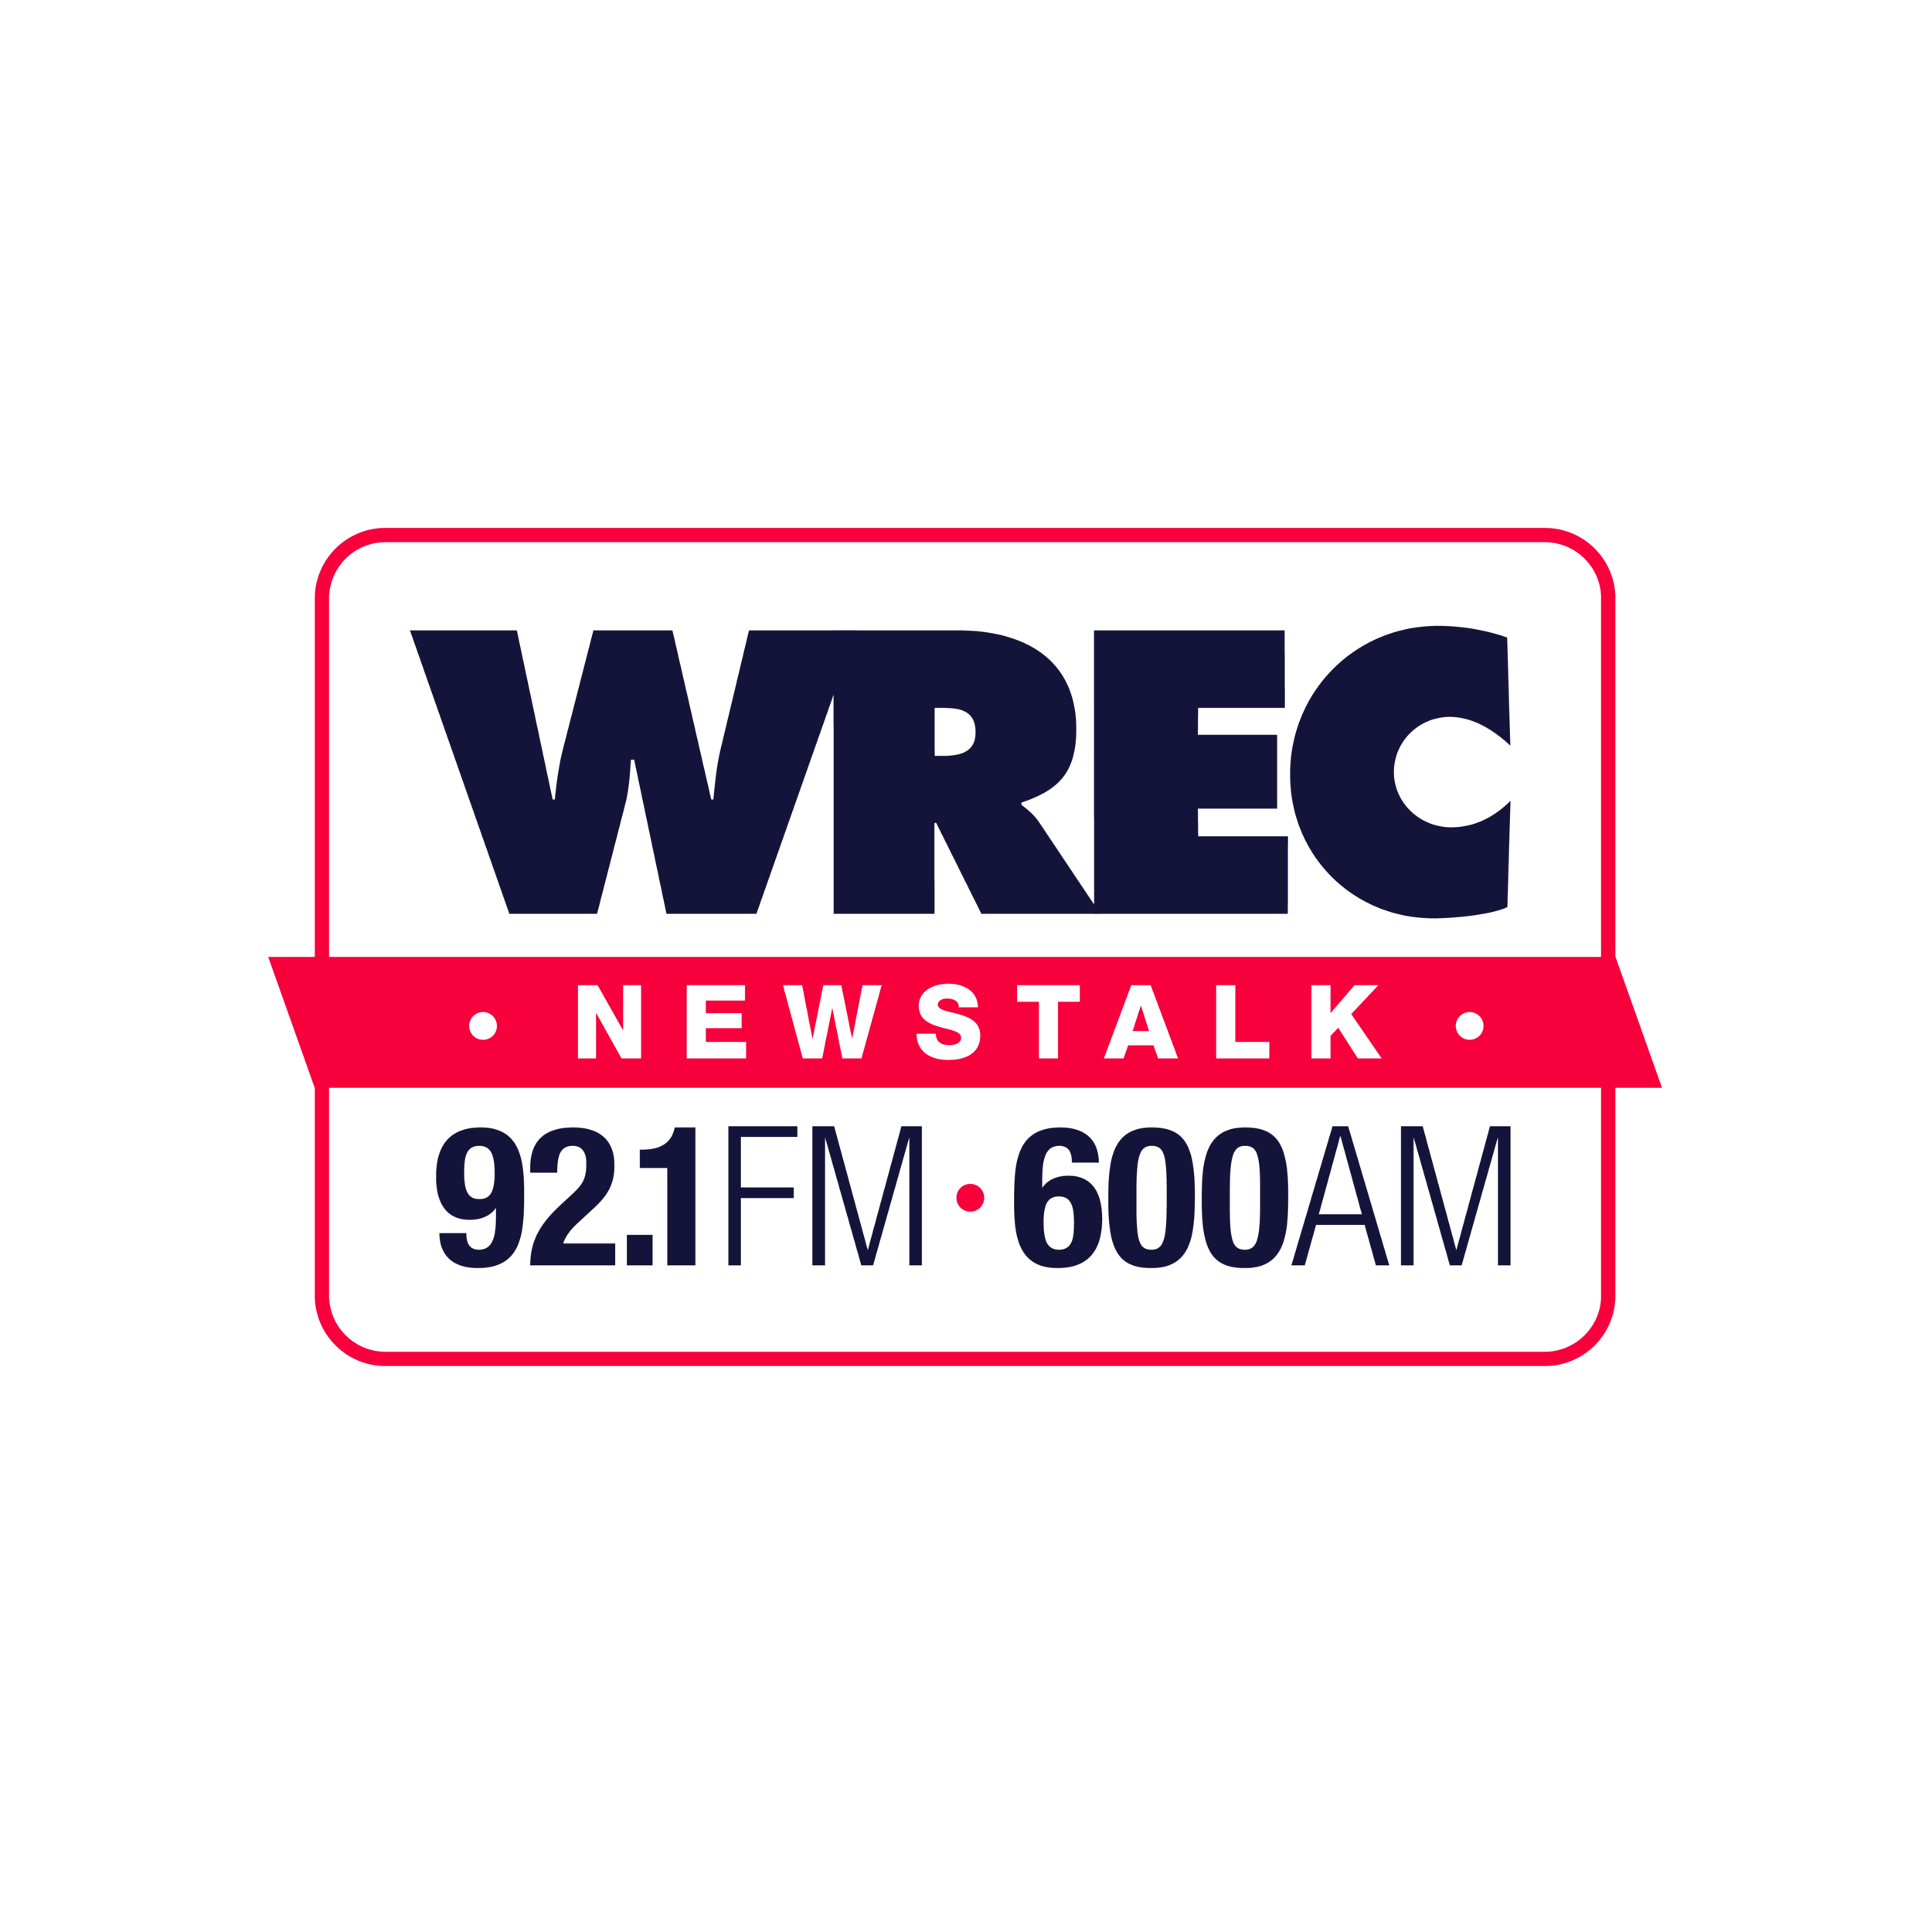 Newstalk_Wrec600am-921fm_final-01.png